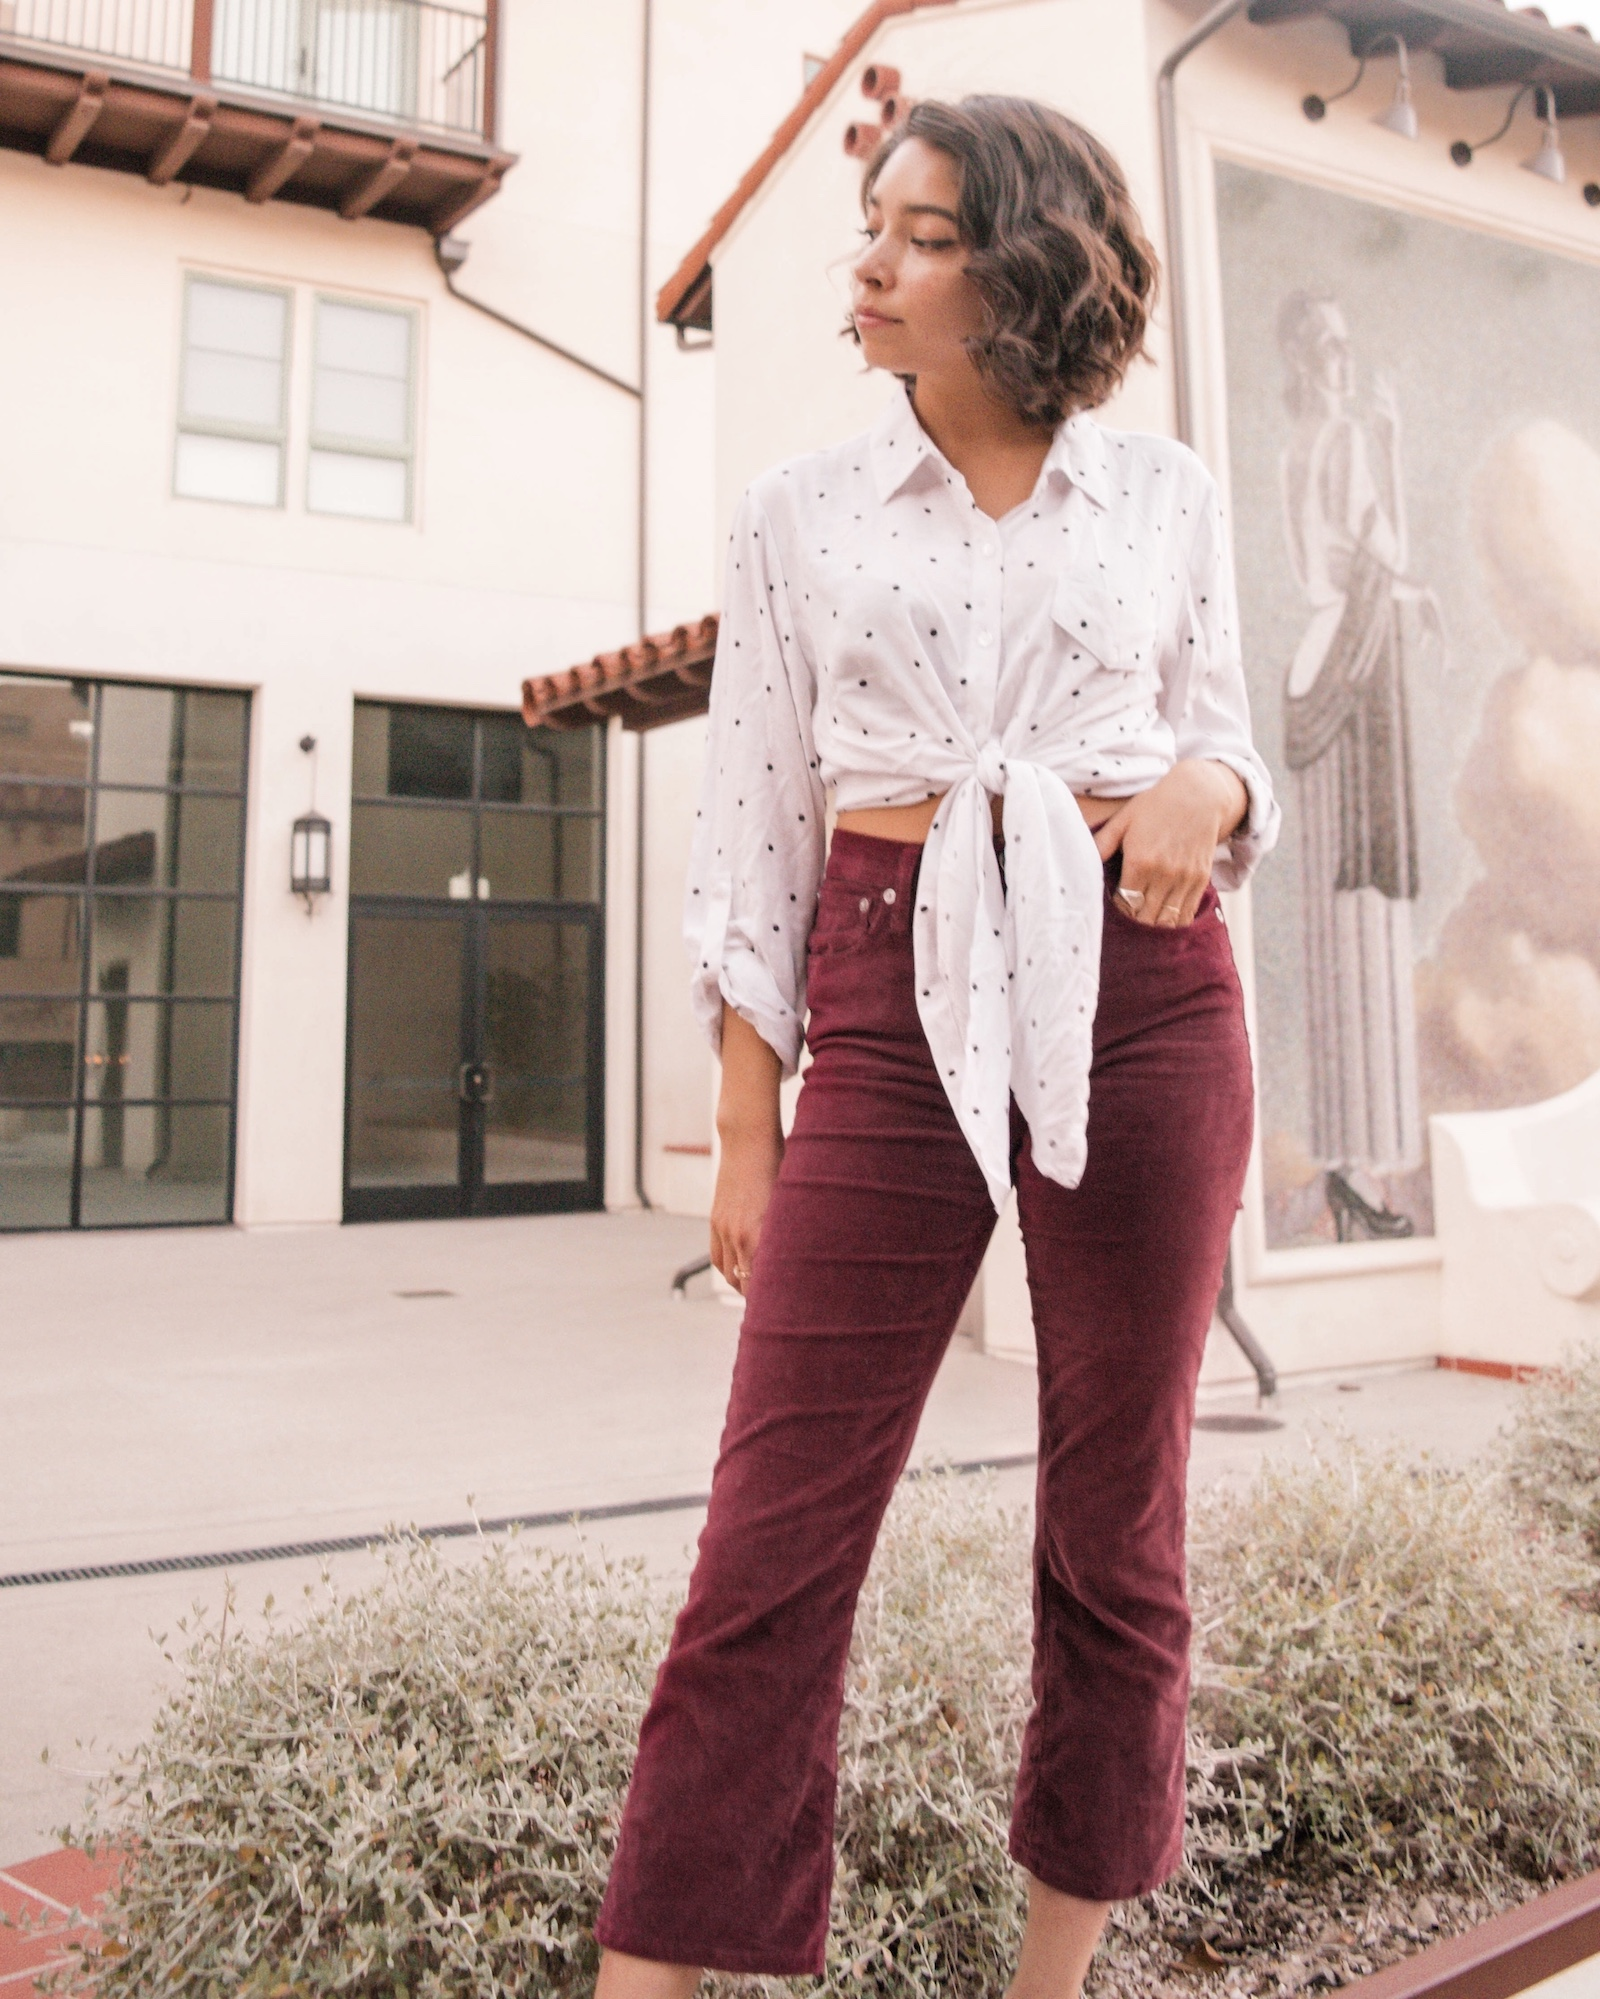 Corduroy red kick flare crop pants thrifted outfit idea // A Week Of Self-Expressive Outfits With Aja Duran From Aja With Love on The Good Trade